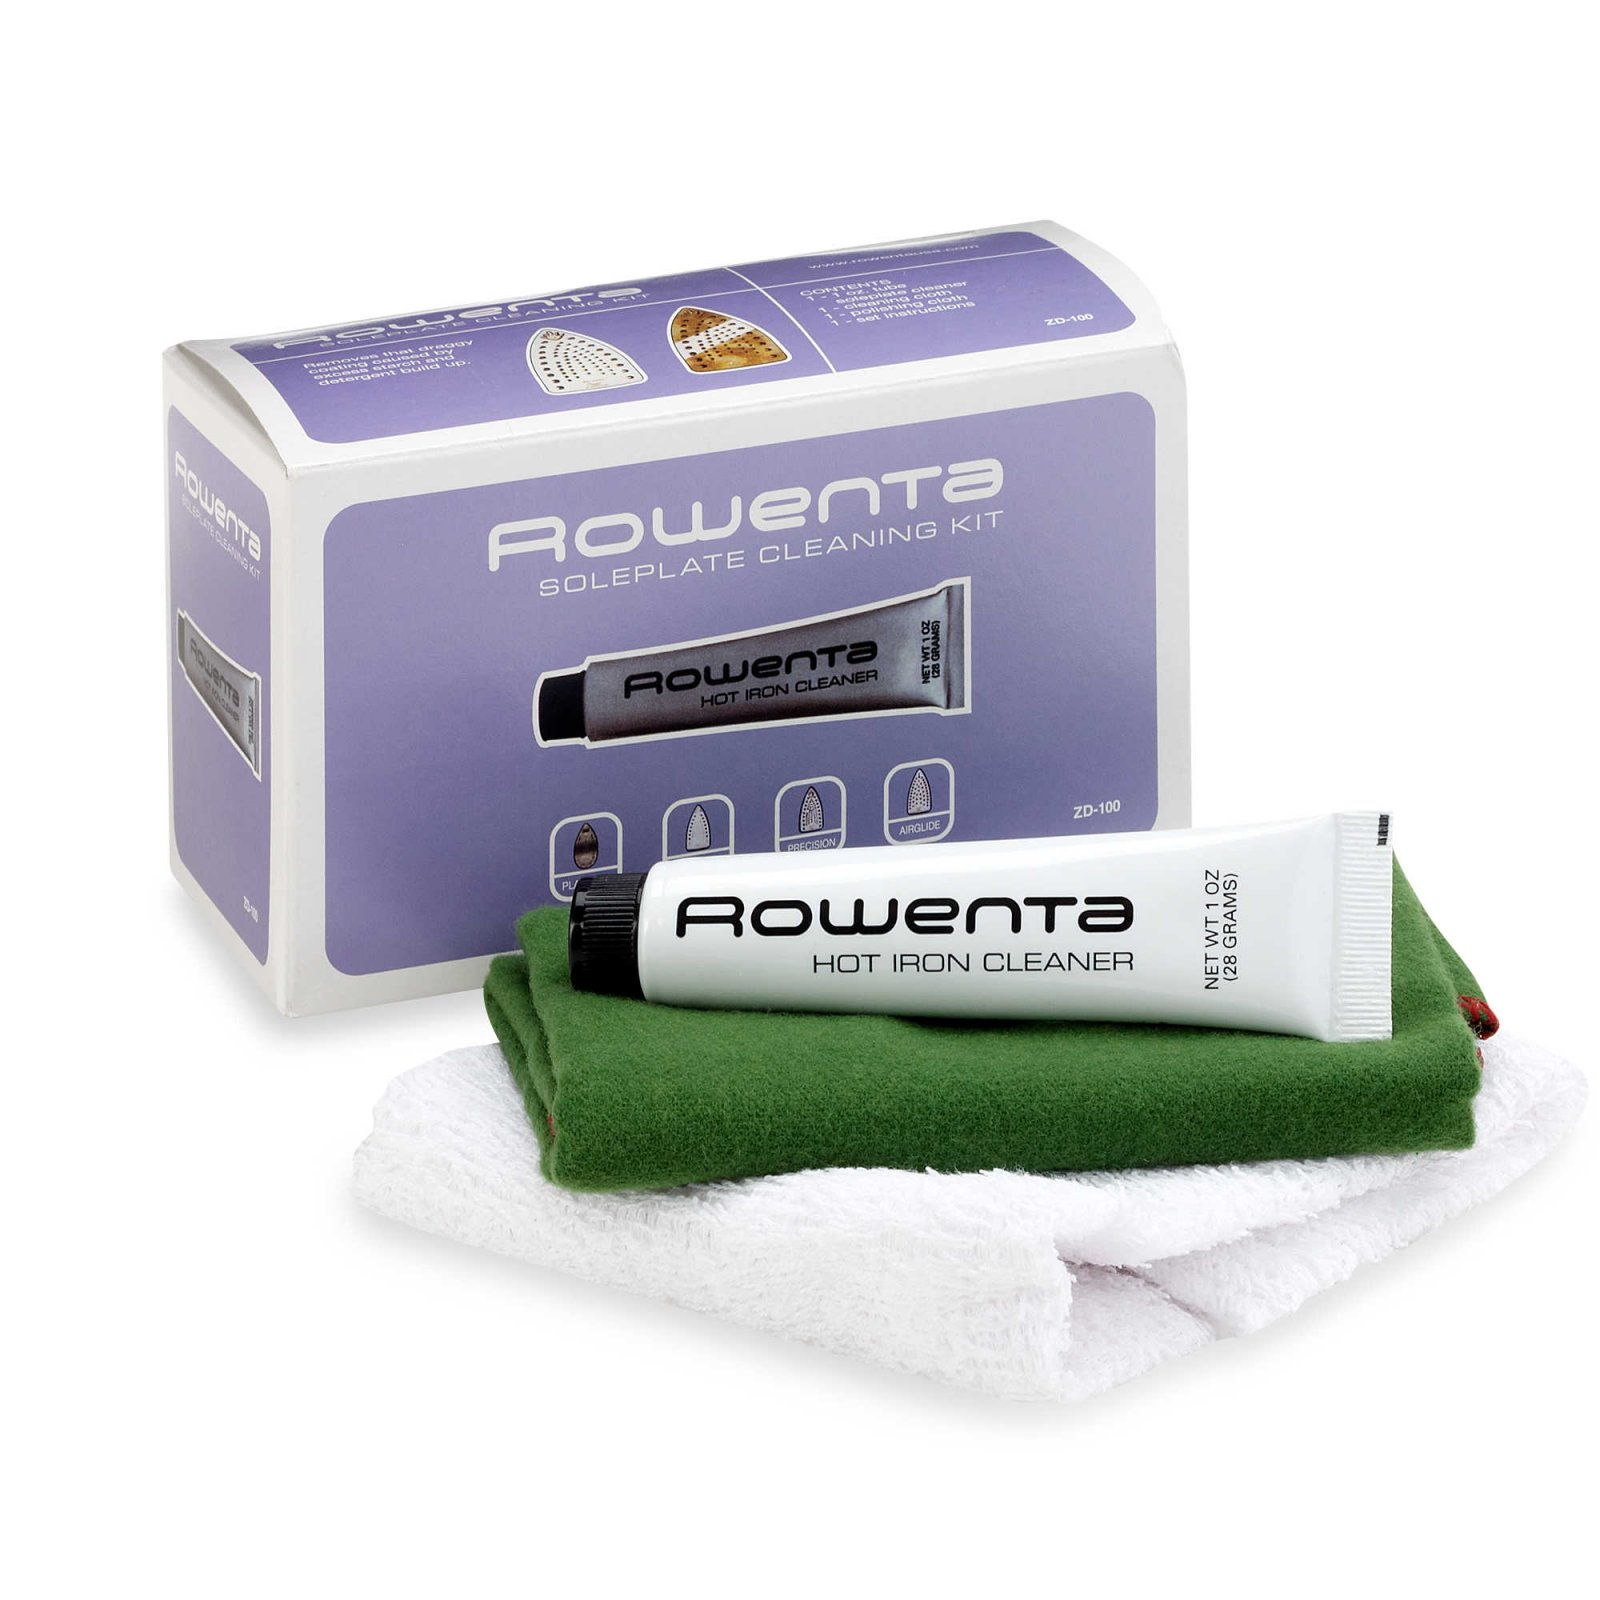 Rowenta Soleplate Cleaning Kit